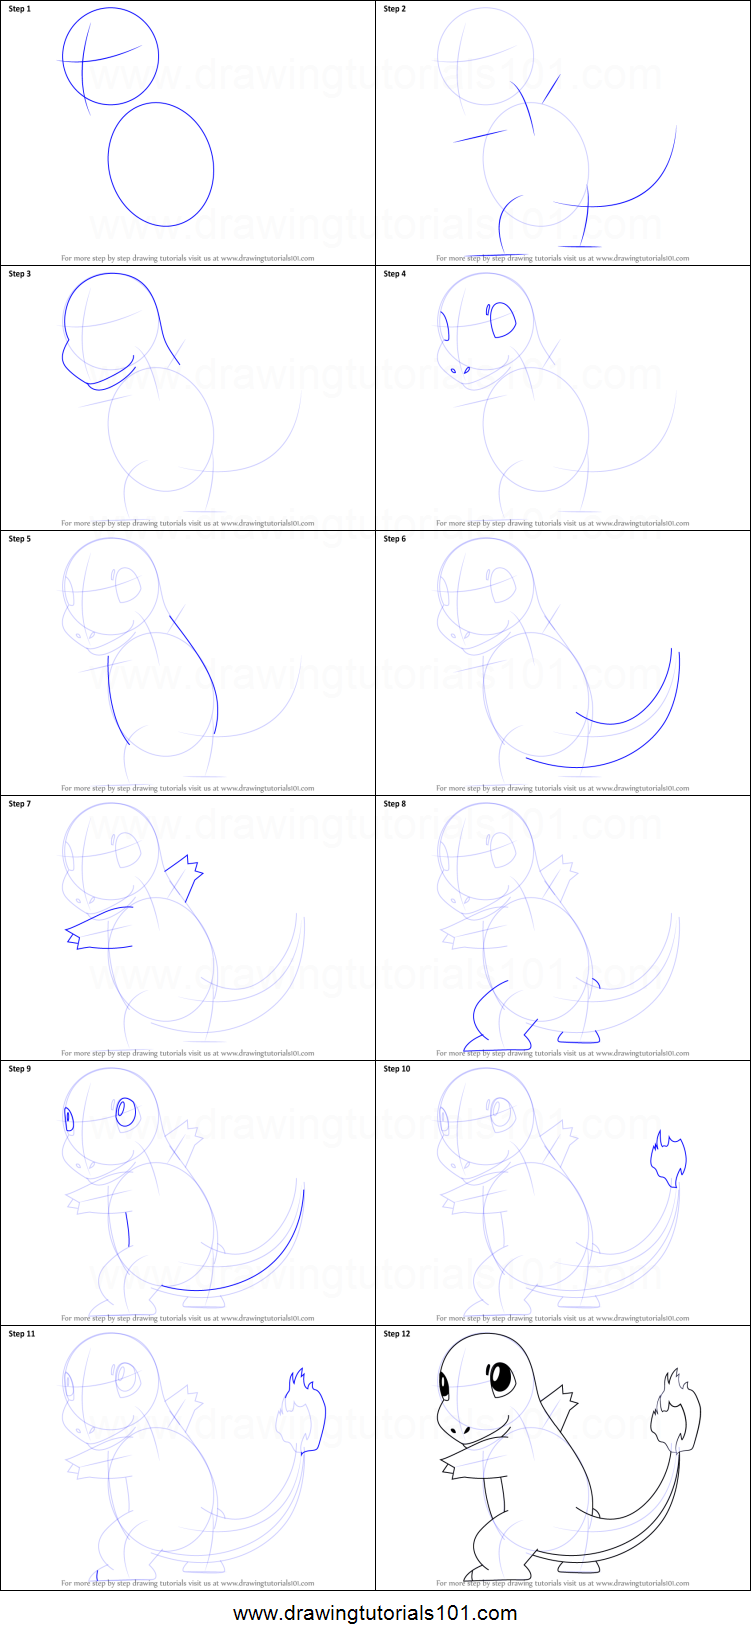 How to Draw Charmander from Pokemon printable step by step drawing sheet : DrawingTutorials101.com